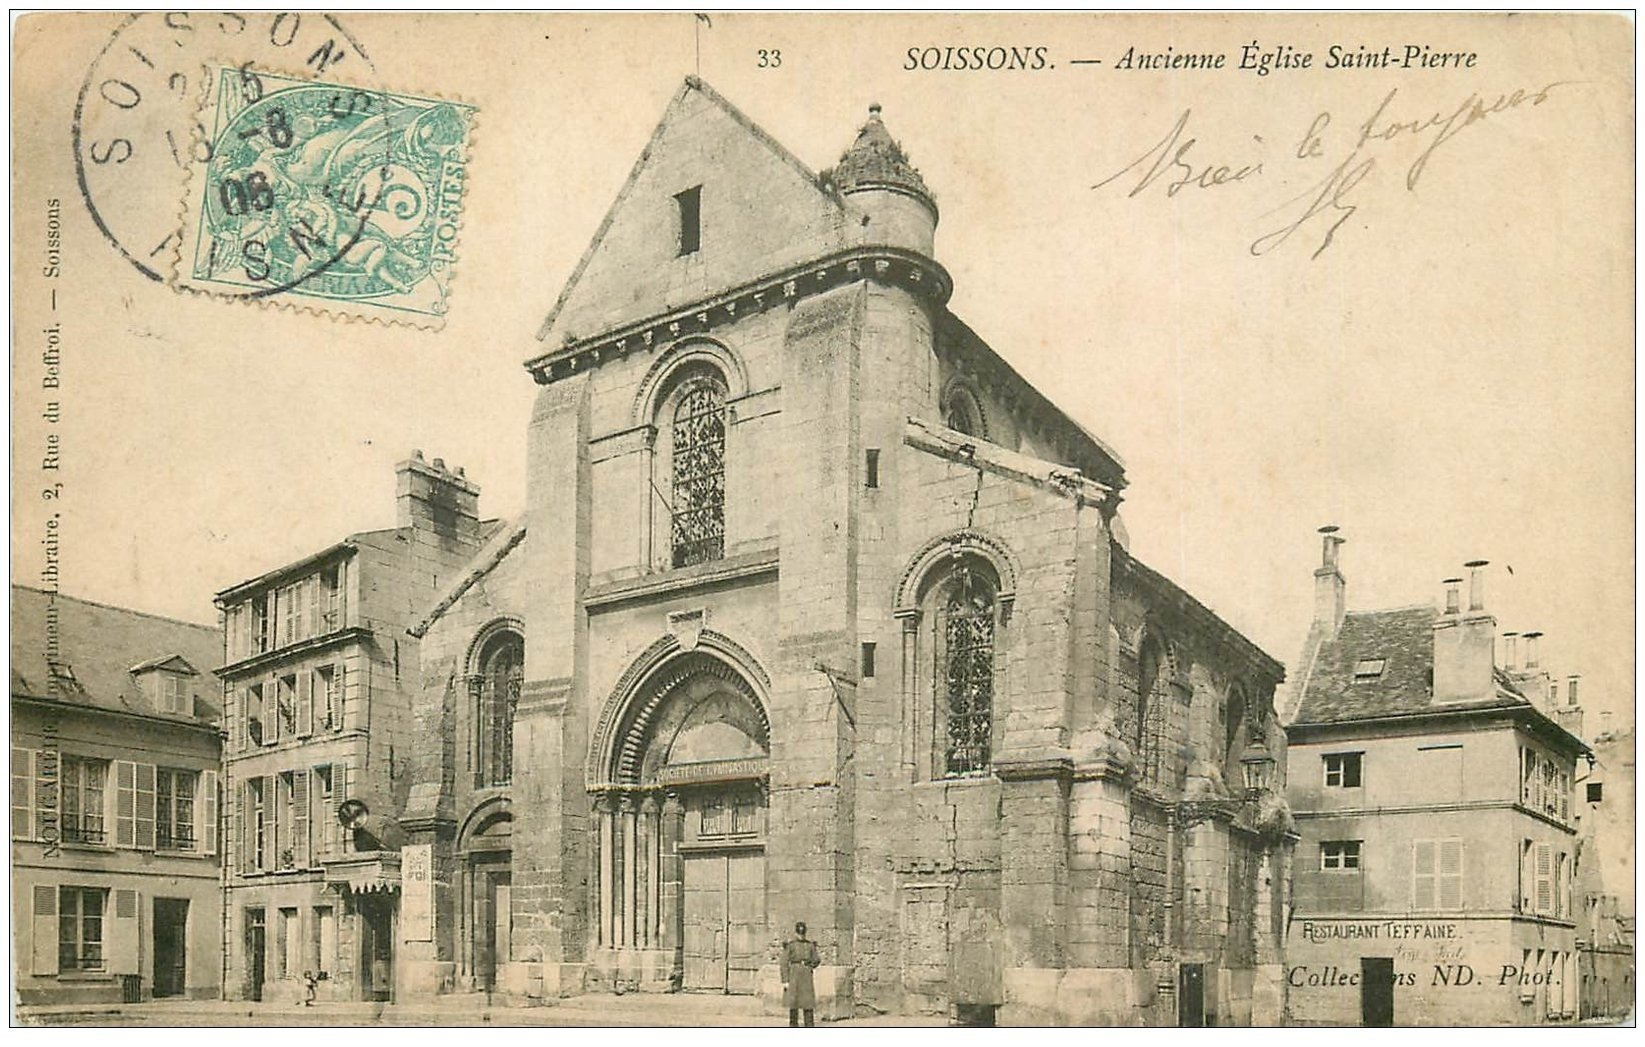 carte postale ancienne 02 SOISSONS. Ancienne Eglise Saint-pierre 1906. Restaurant Teffaine